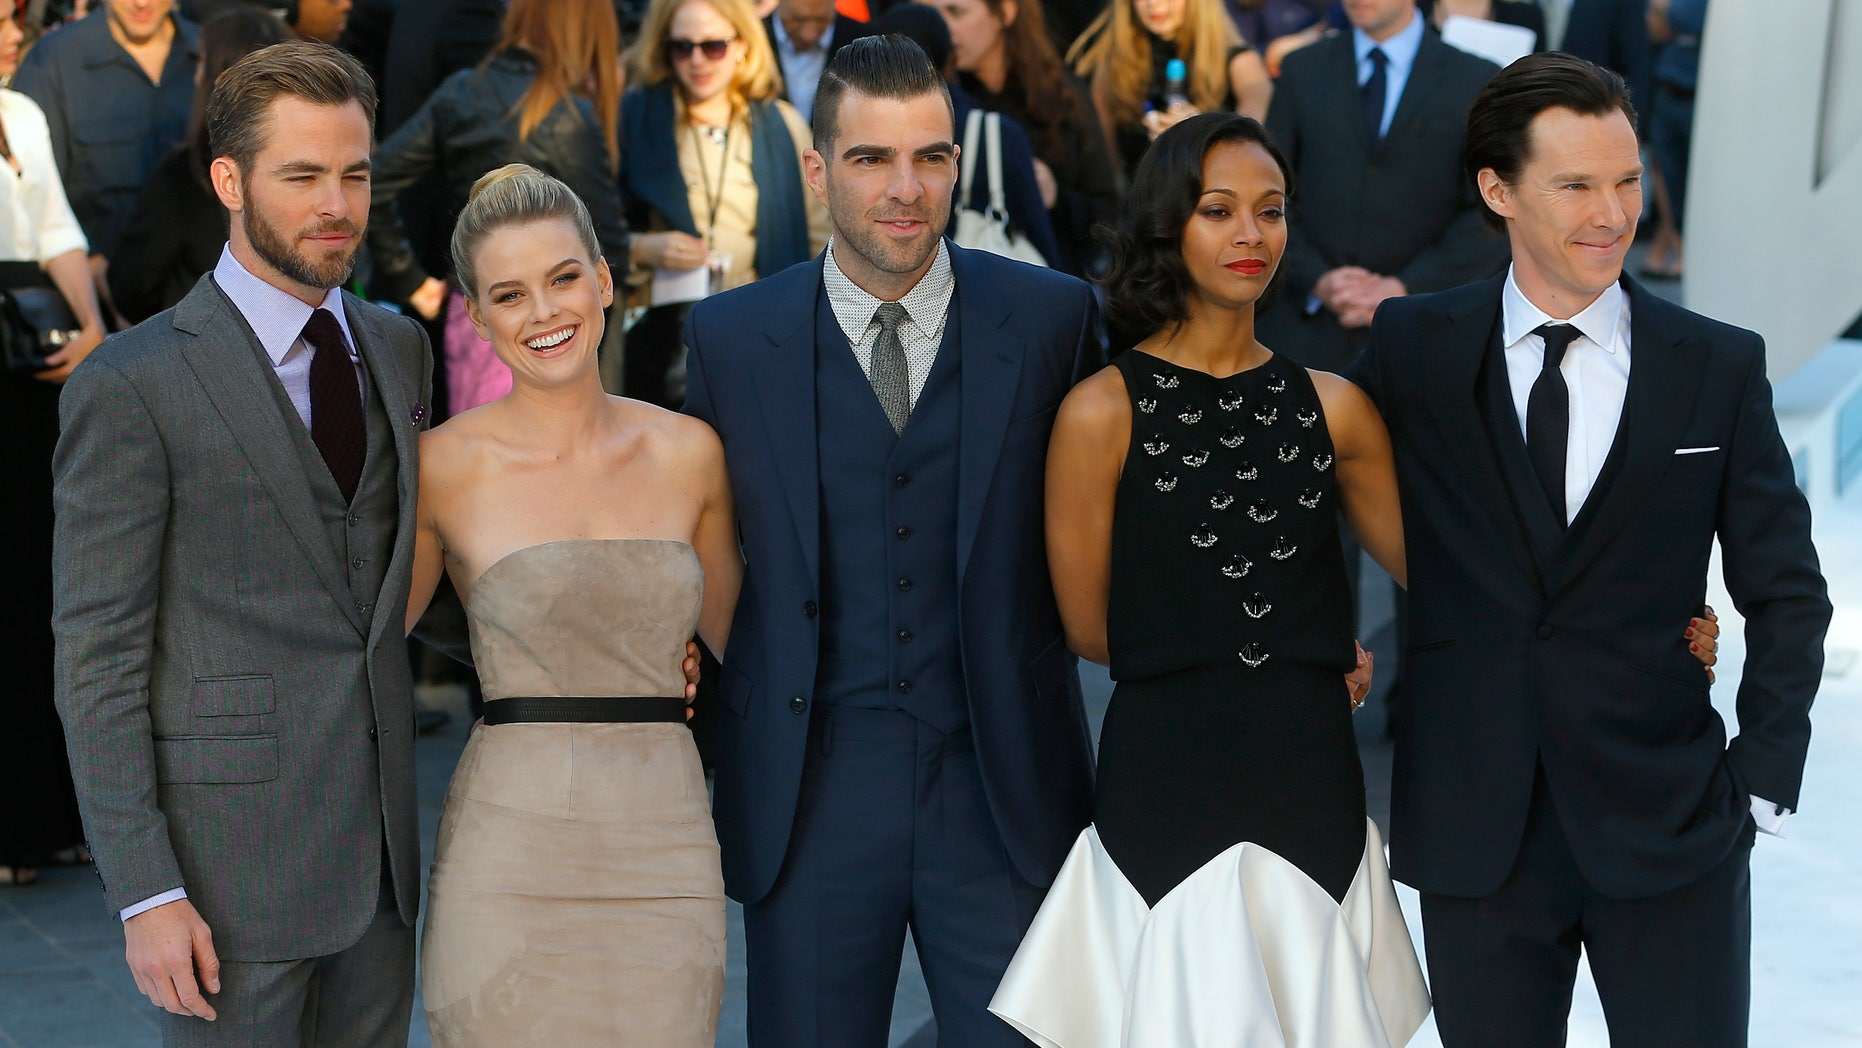 """May 2, 2013. Cast members of """"Star Trek Into Darkness,"""" (L-R) Chris Pine, Alice Eve, Zachary Quinto, Zoe Saldana and Benedict Cumberbatch pose for photographers at the film's international premiere in London."""